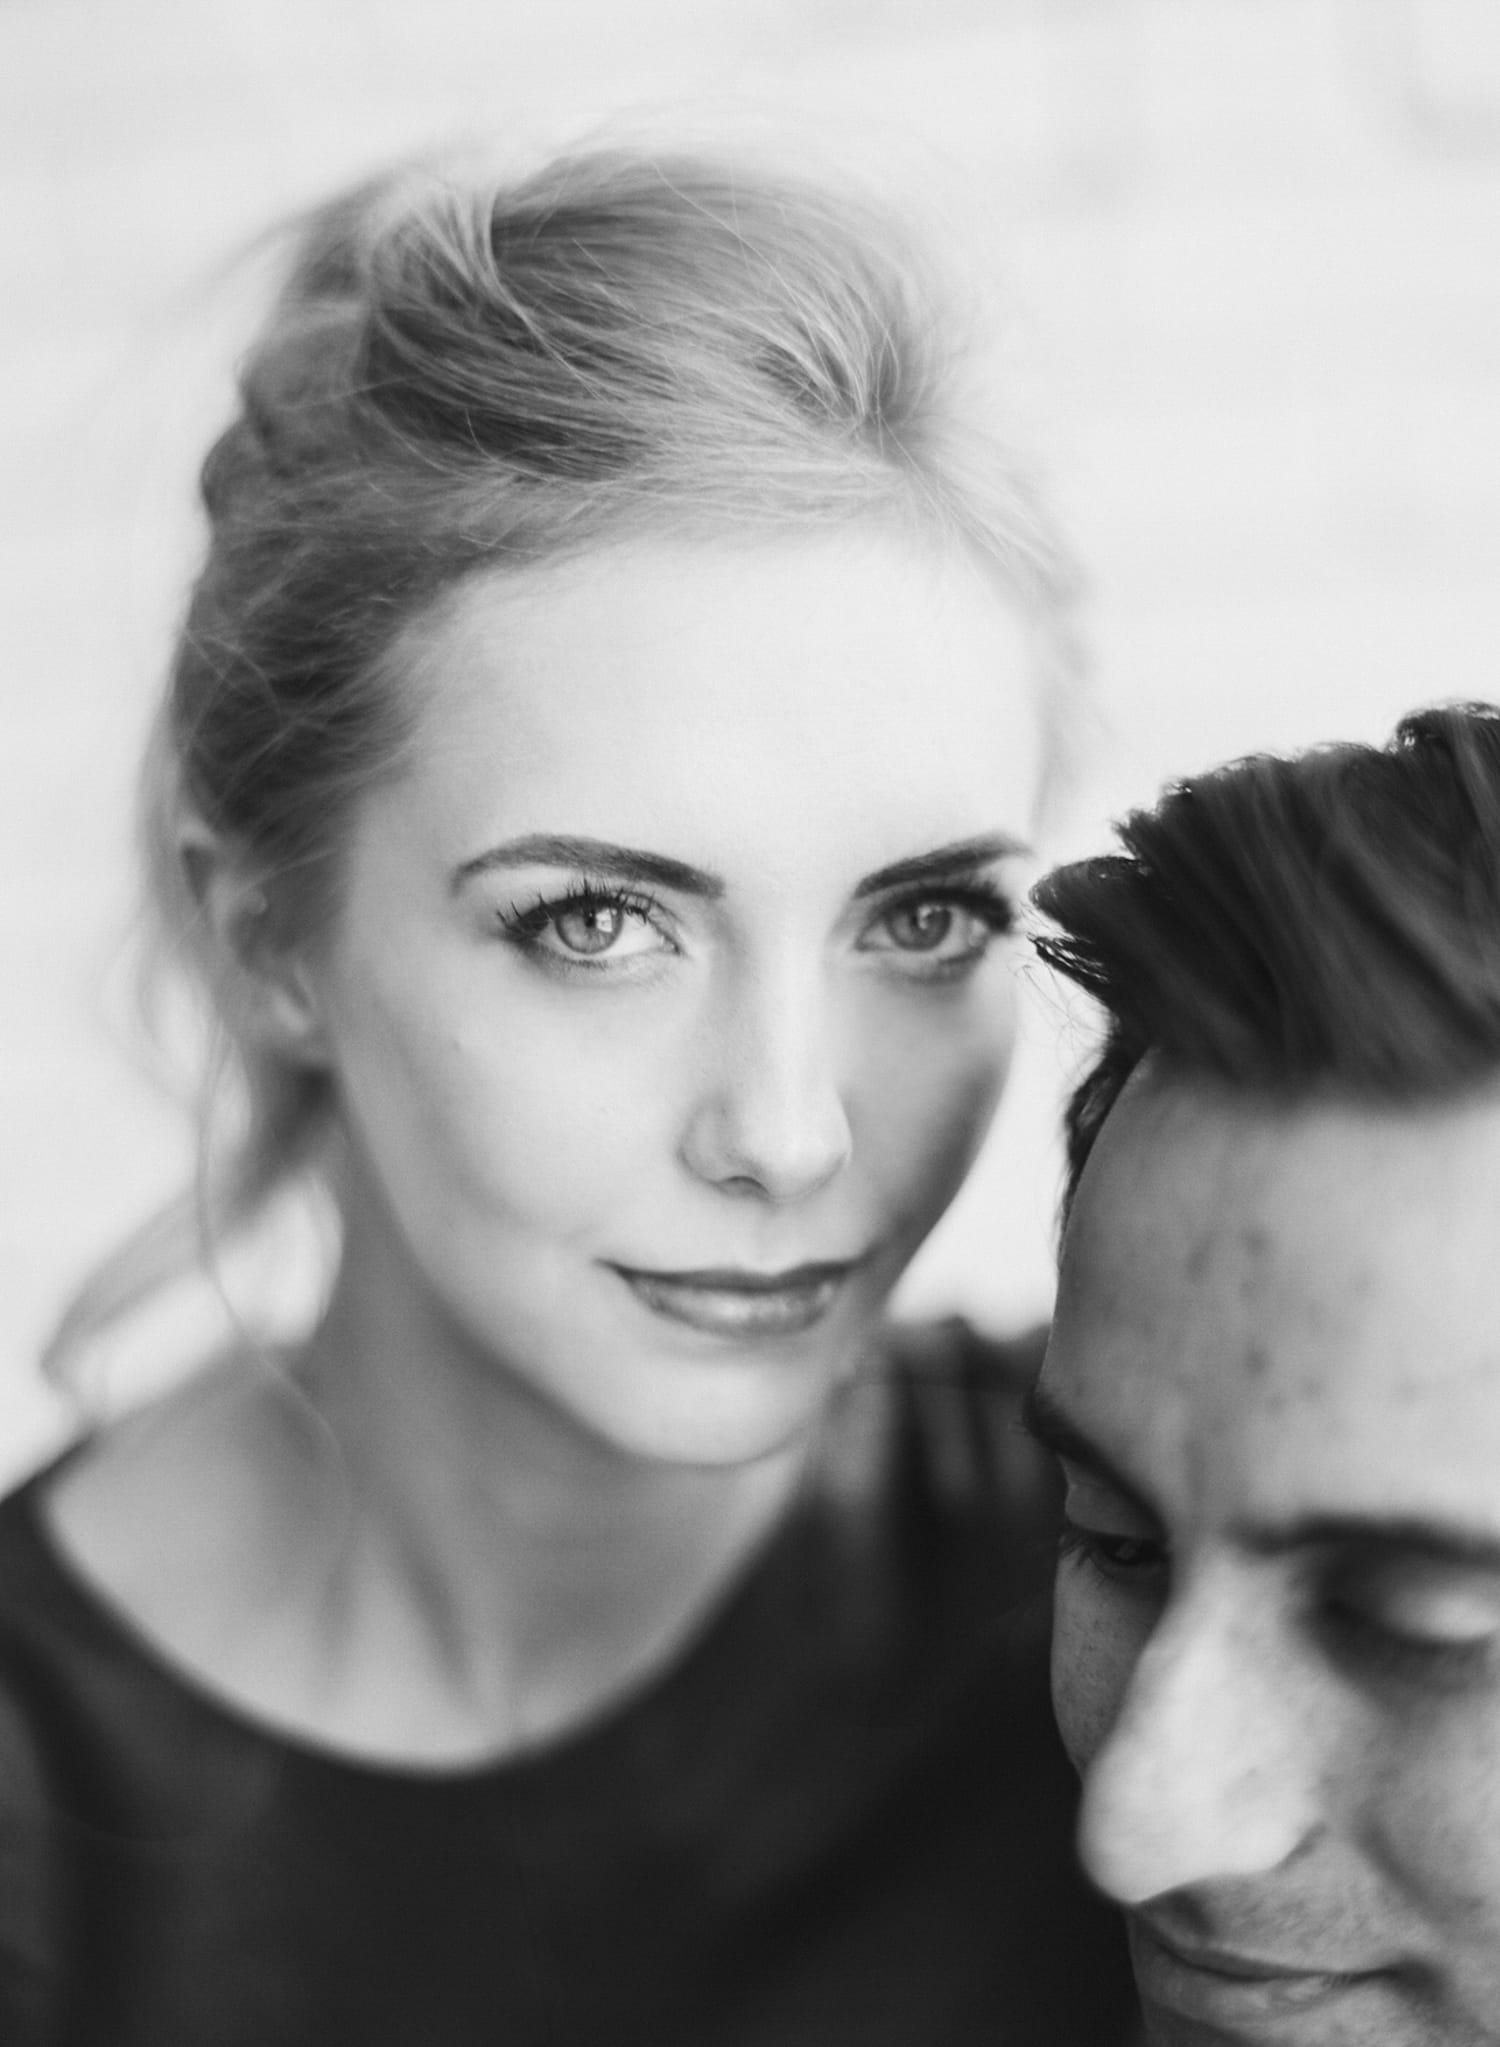 ONE_ELEVEN_EAST_MODERN_ENGAGEMENT_SHOOT_AUSTIN_TX_BY_MATTHEW_MOORE_PHOTOGRAPHY_00148.jpg